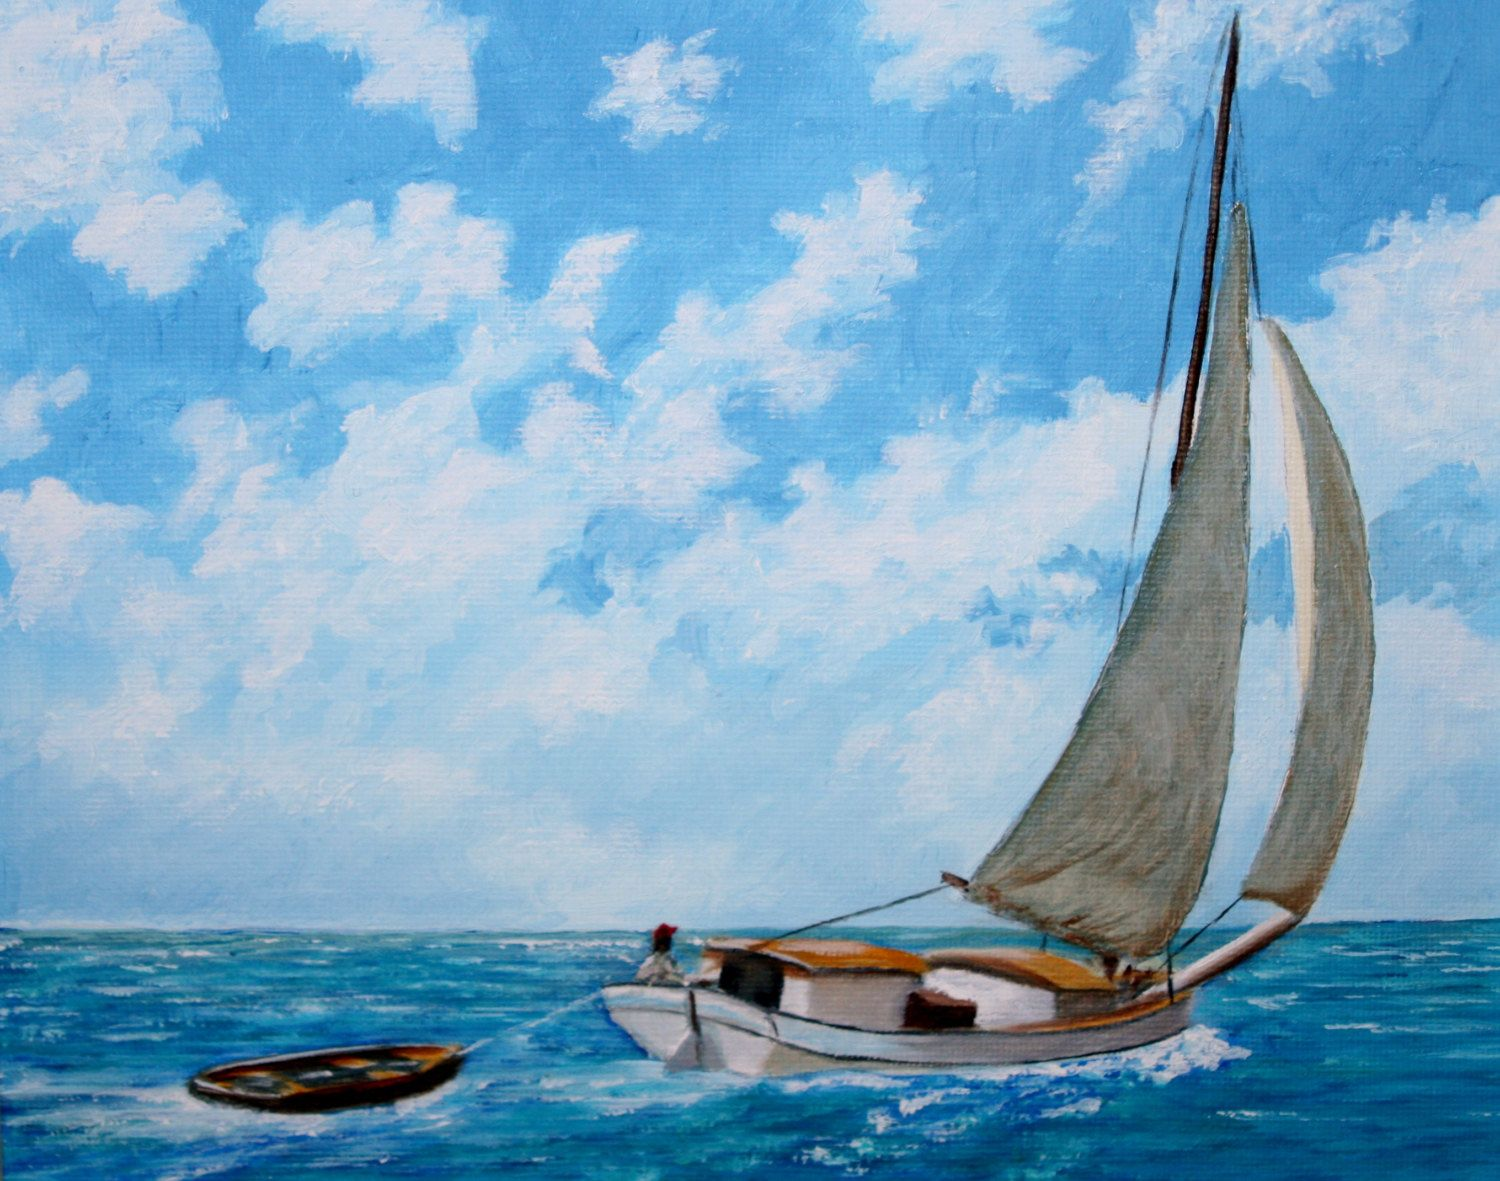 An old conch boat in the waters off the Bahamas.  The painting is 10 inches wide by 8 inches high.  It is an original oil on stretched canvas.  I can also offer the painting framed - as in photo 2.